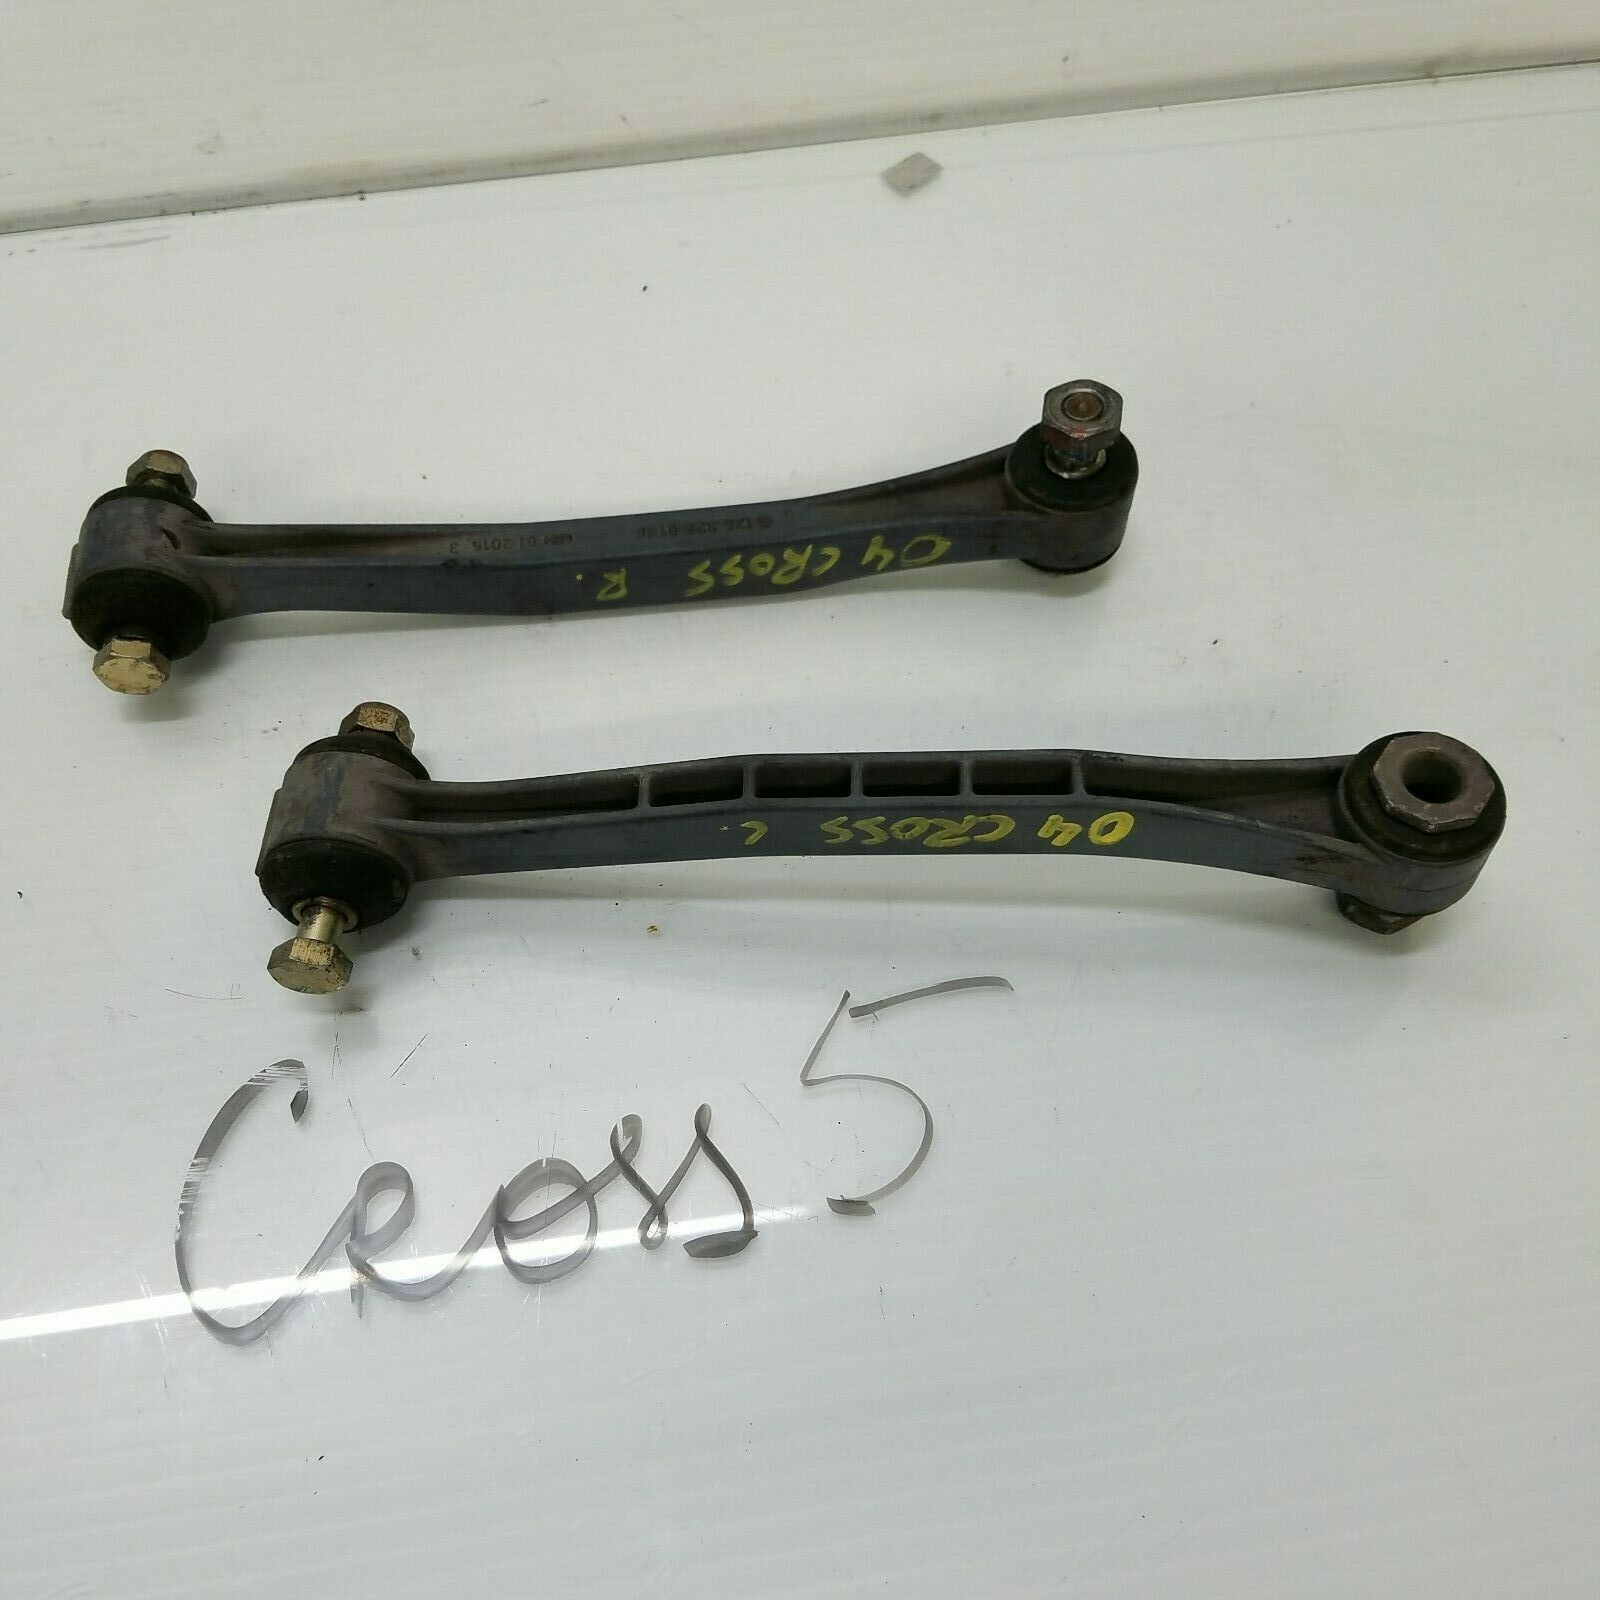 2004-2008 CHRYSLER CROSSFIRE REAR RIGHT & LEFT SWAY BAR LINKS PAIR 1243260116 Does not apply cross5